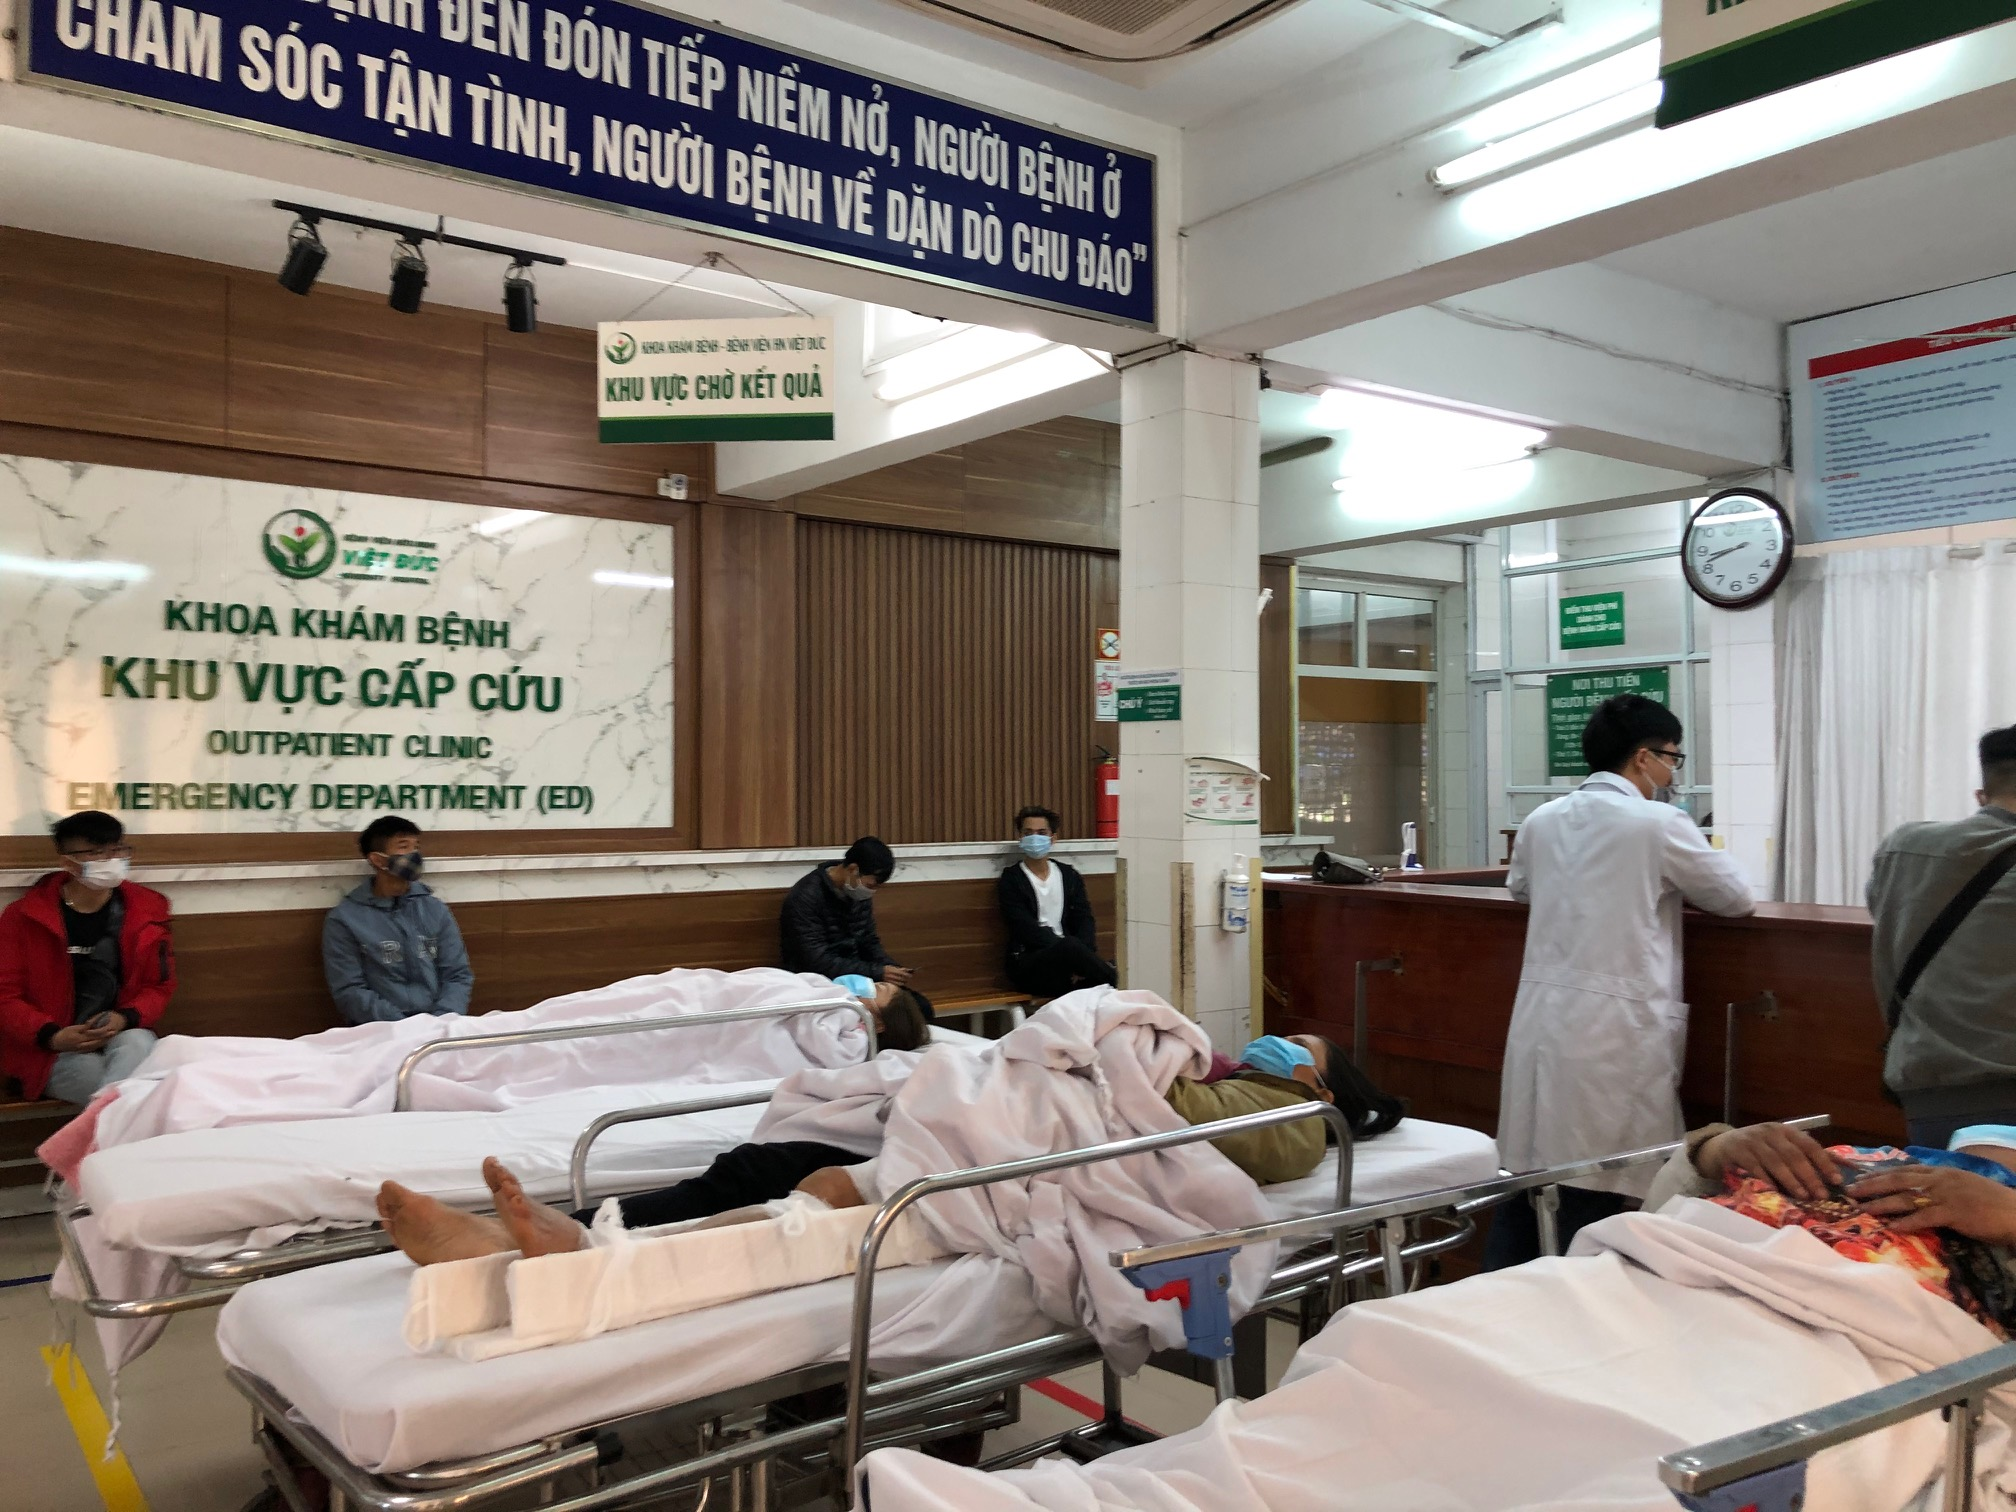 This is the first time Vietnam has a hospital recognized as a training center according to global standards - Photo 2.